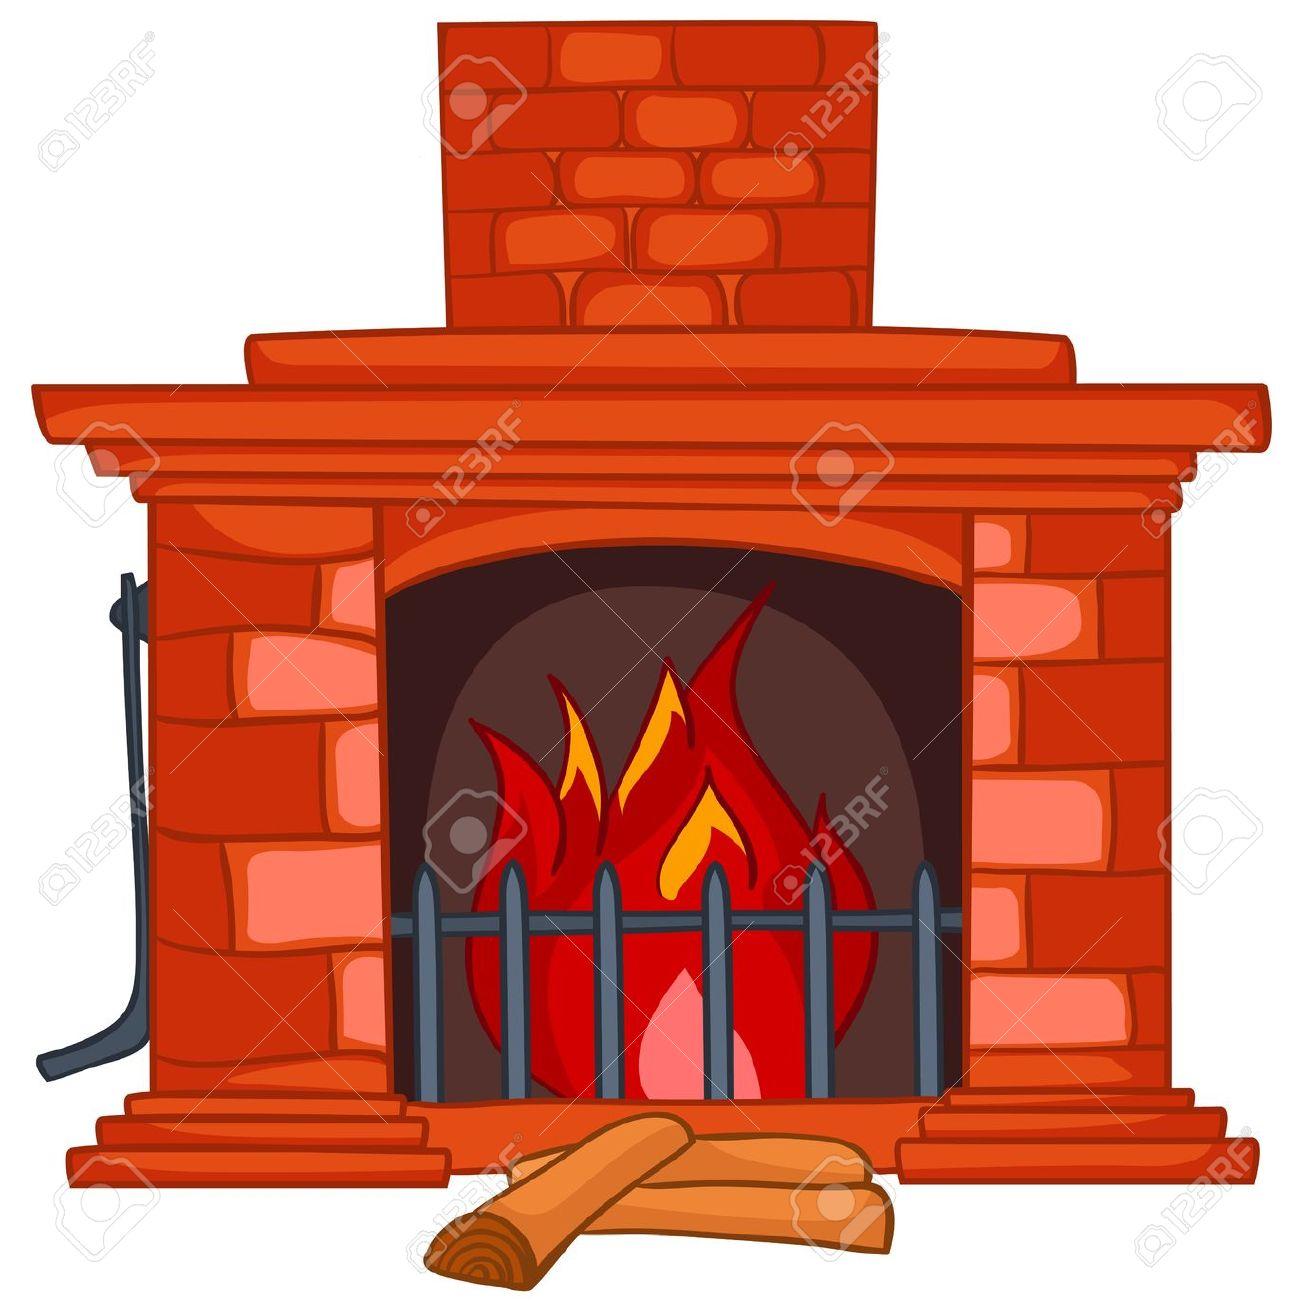 Clipart Fireplace - clipartall